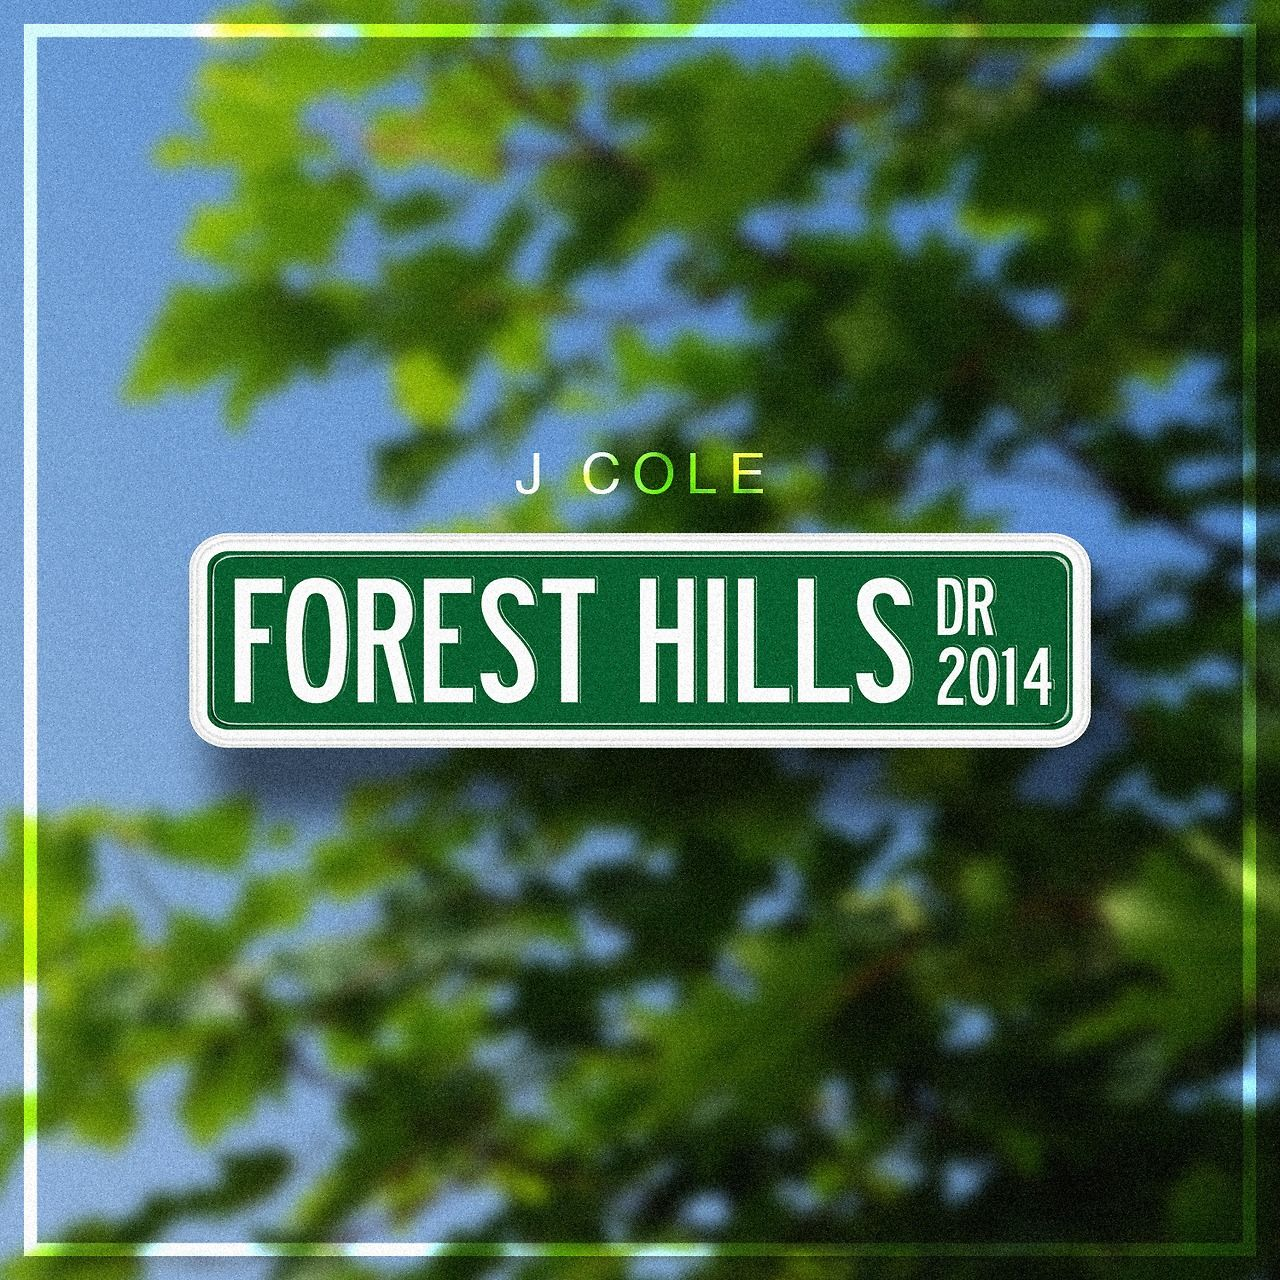 J Cole 2014 Forest Hills Drive Mp3 2014 Lakshery